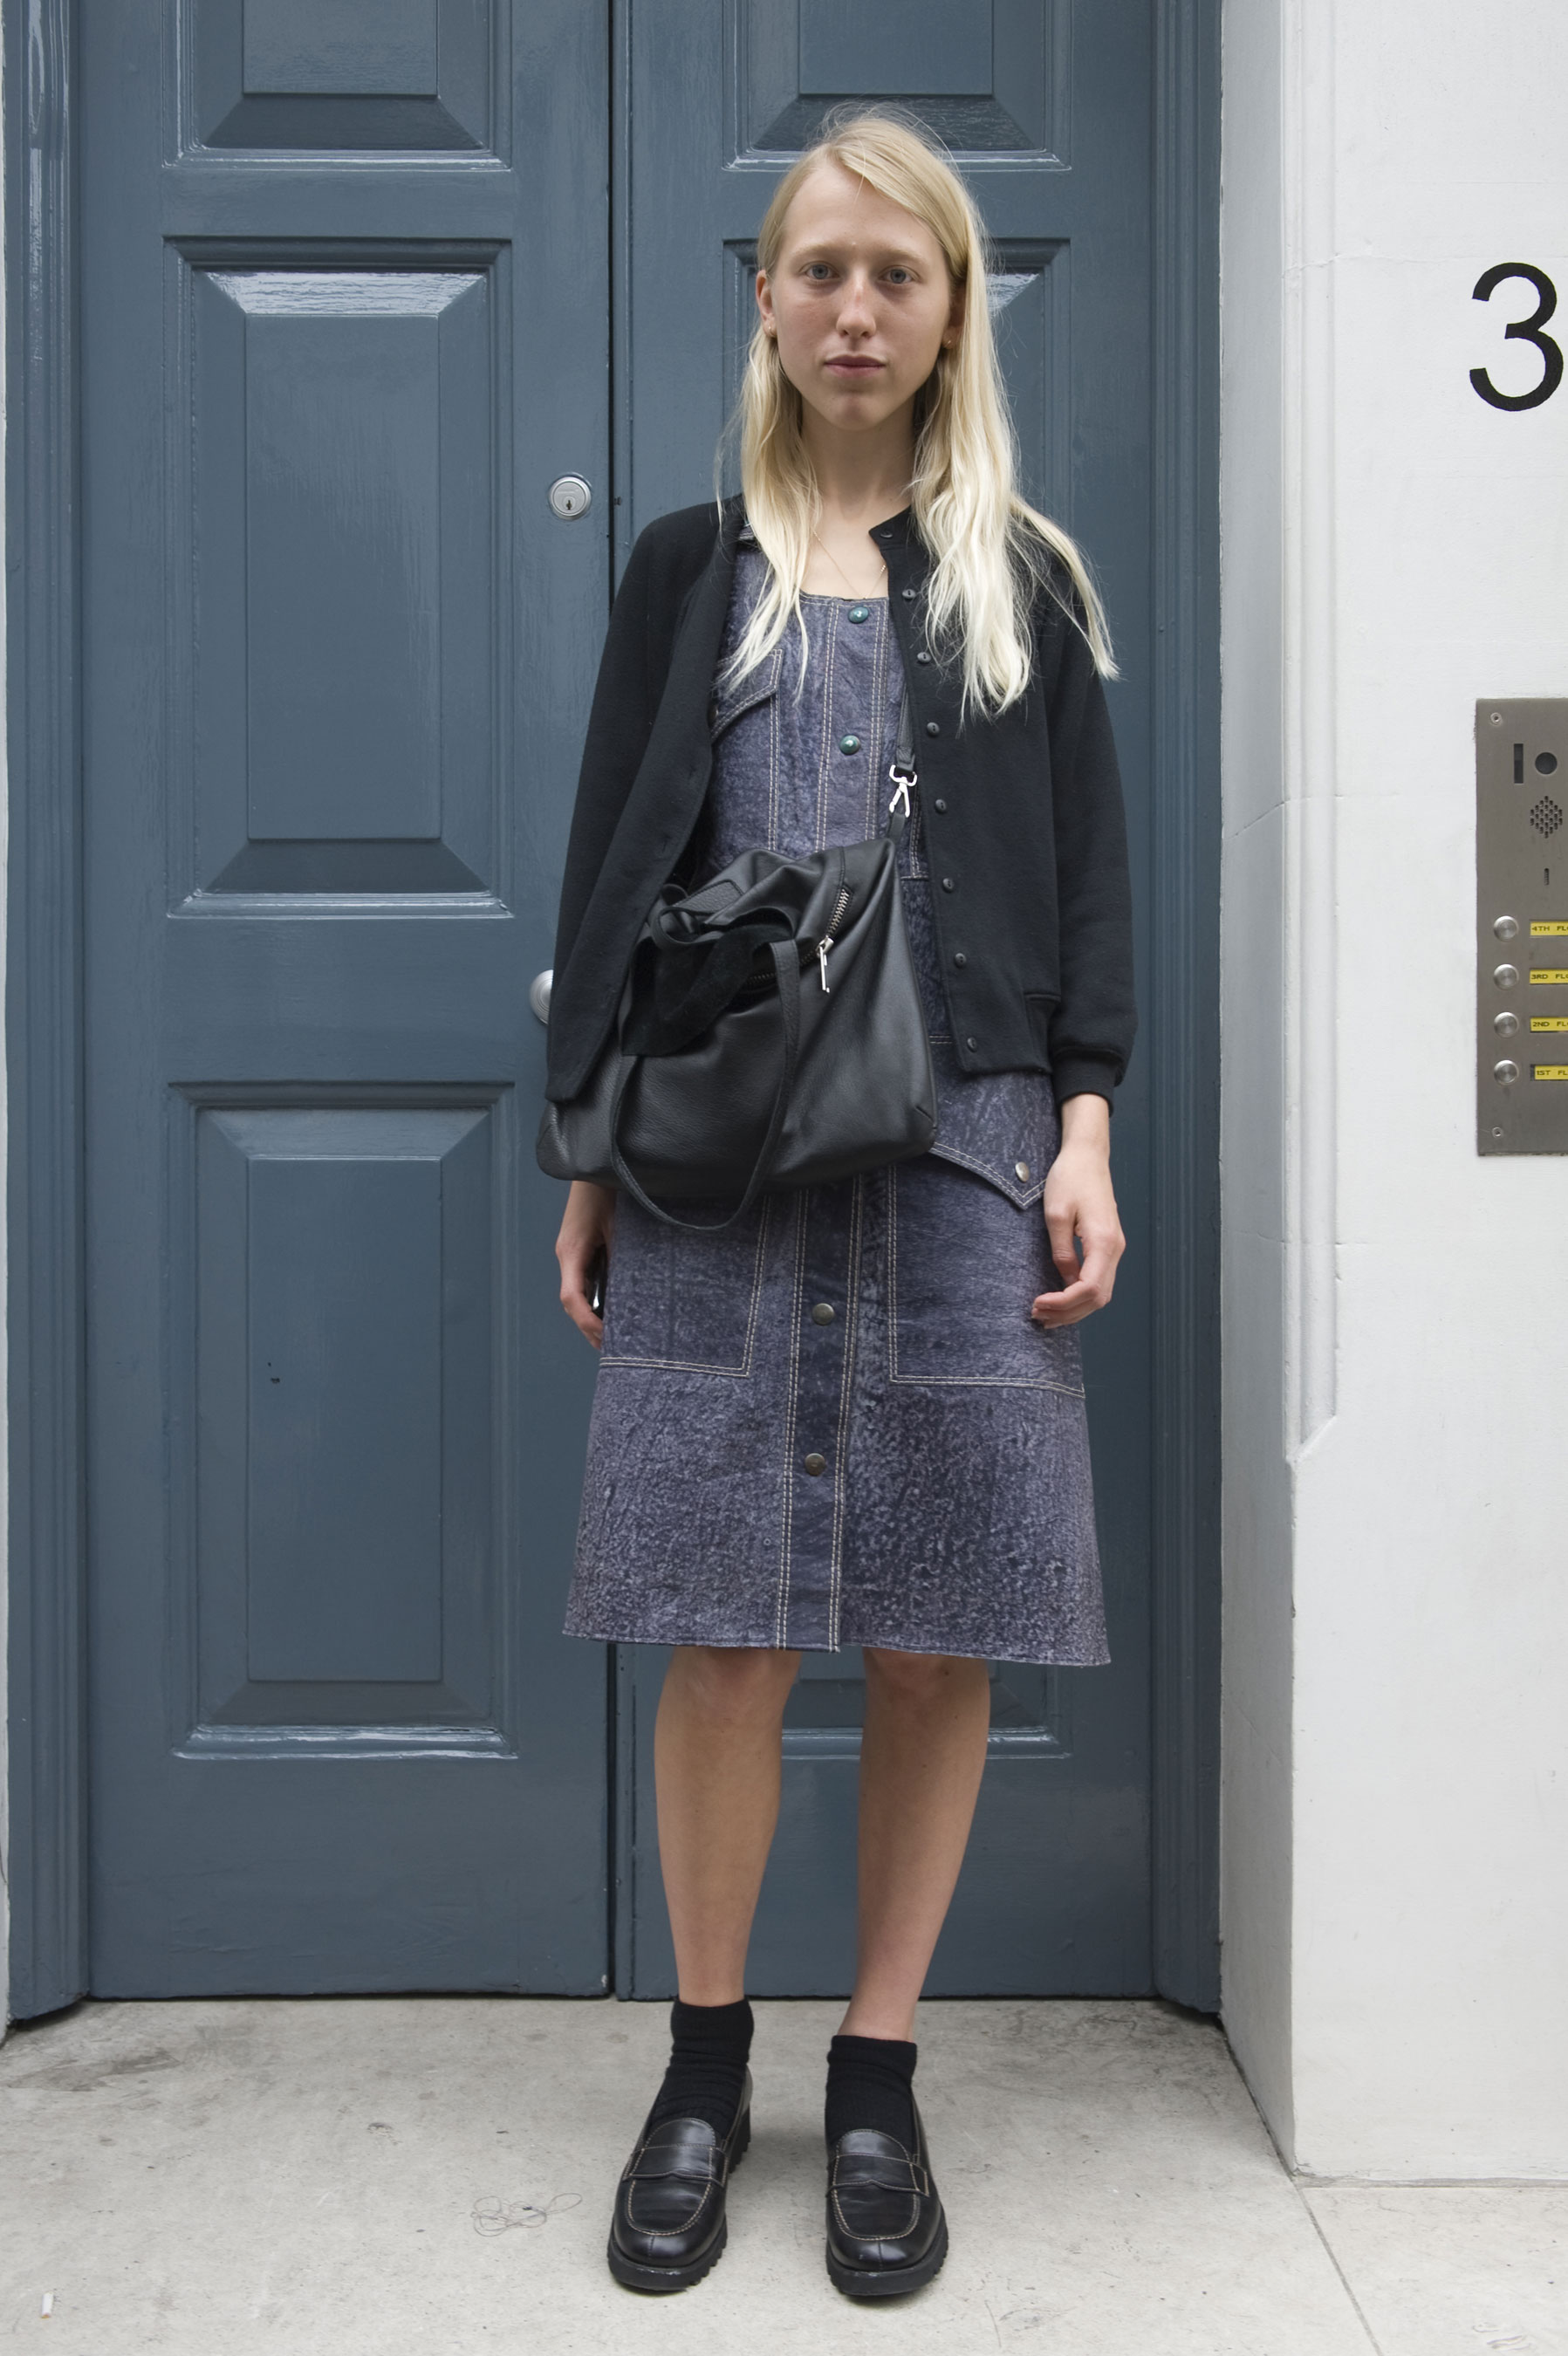 We're feeling this easy approach to denim dress styling: just add socks and loafers.